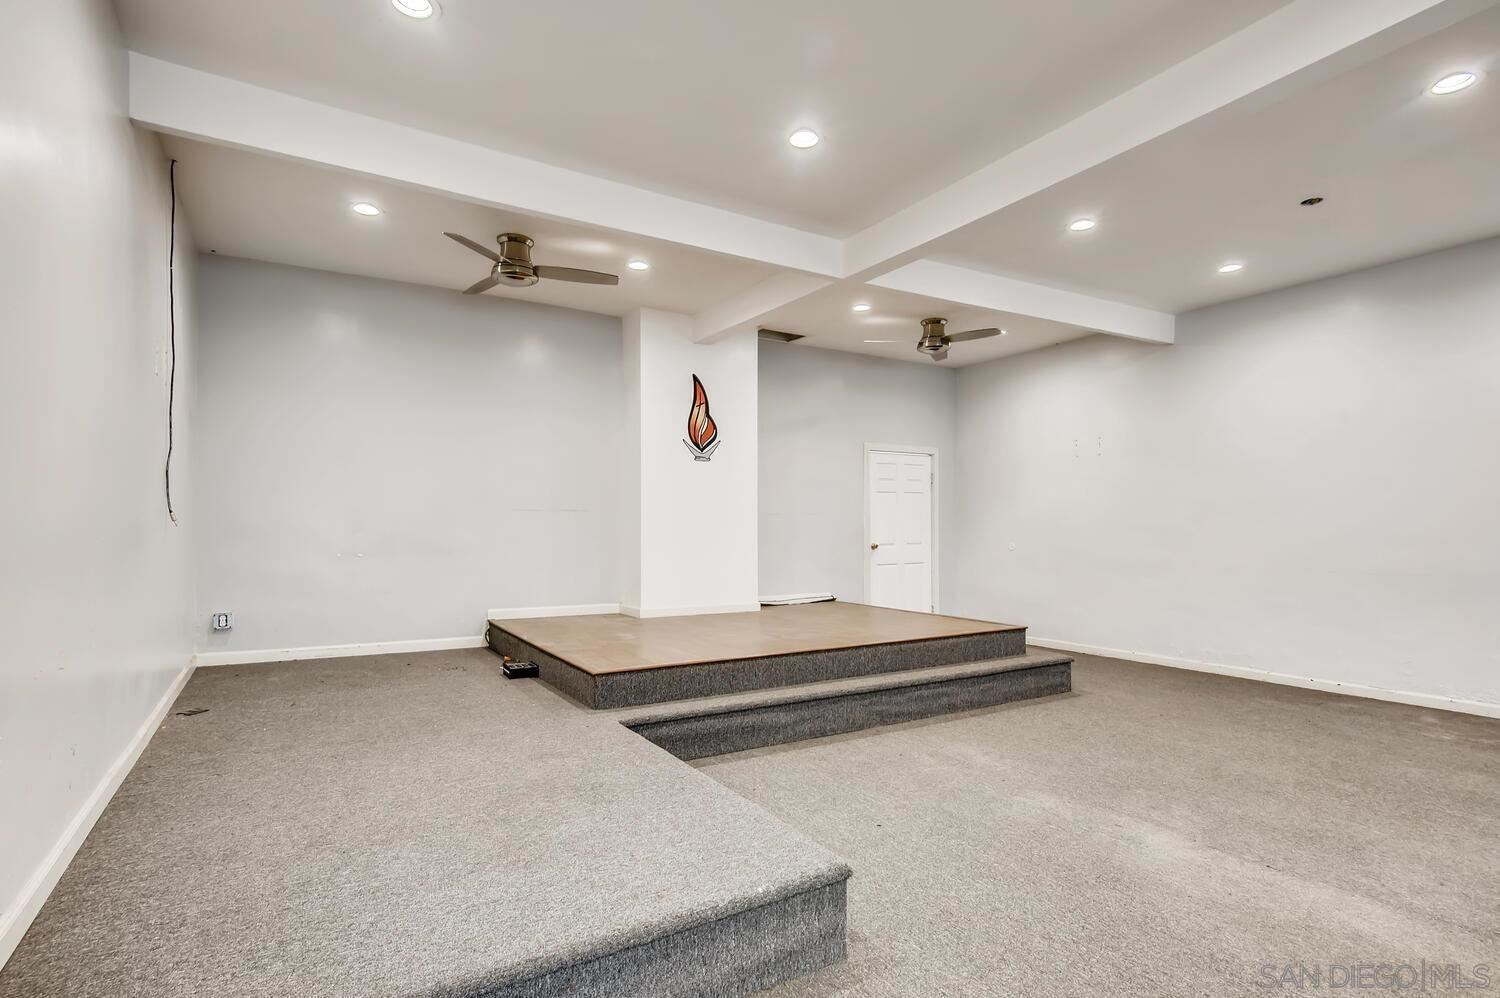 Photo of 2988-90 National Ave, San Diego, CA 92113 (MLS # 210016015)